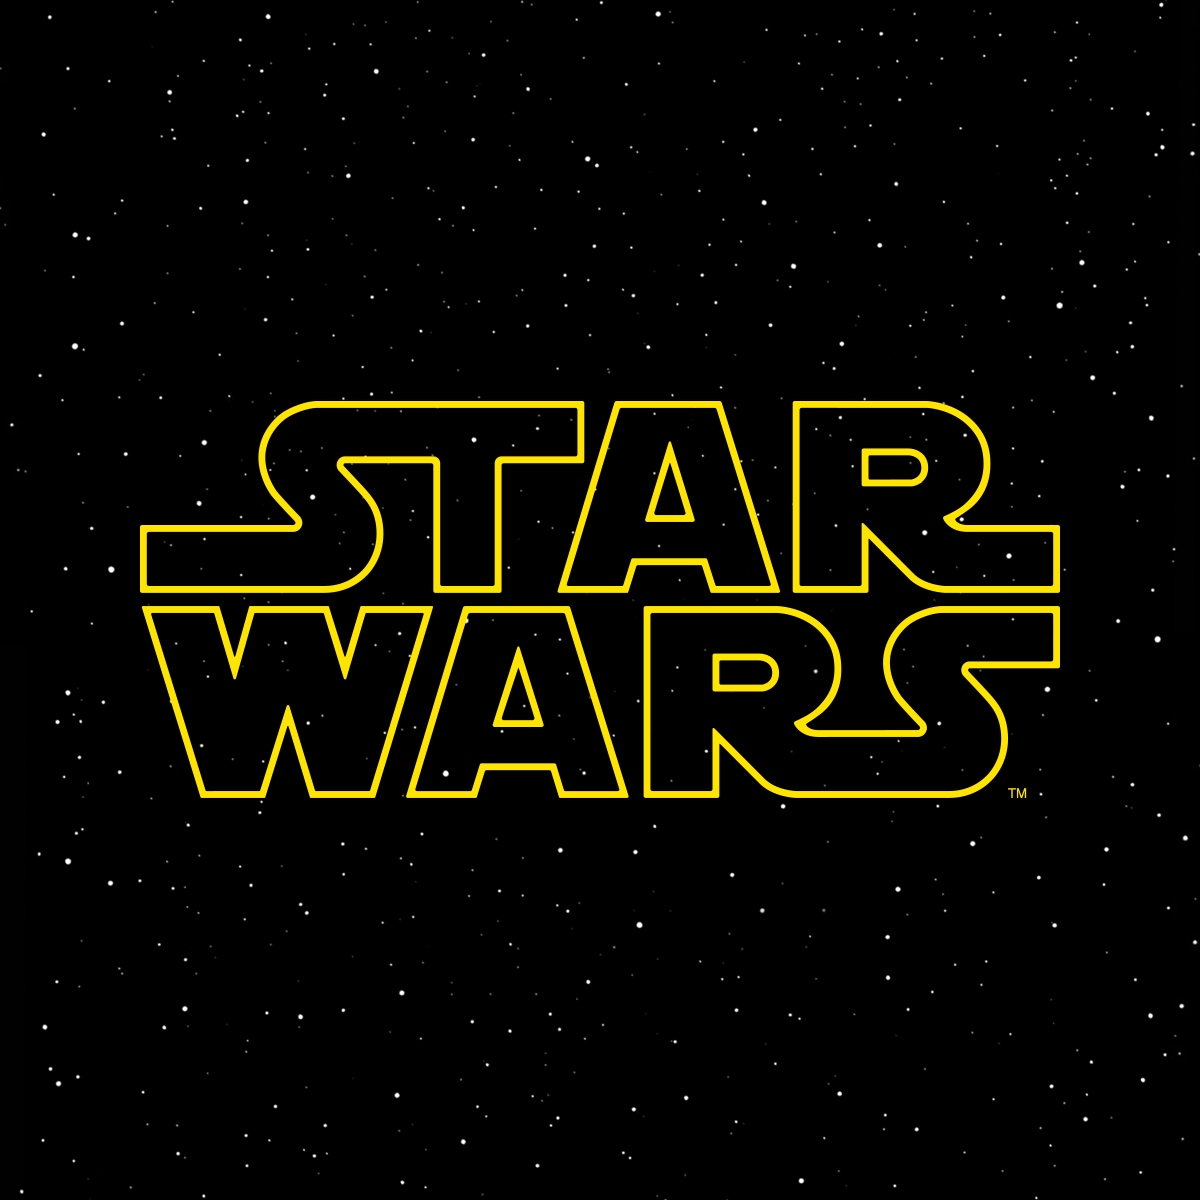 star wars movies in hindi free download 2017